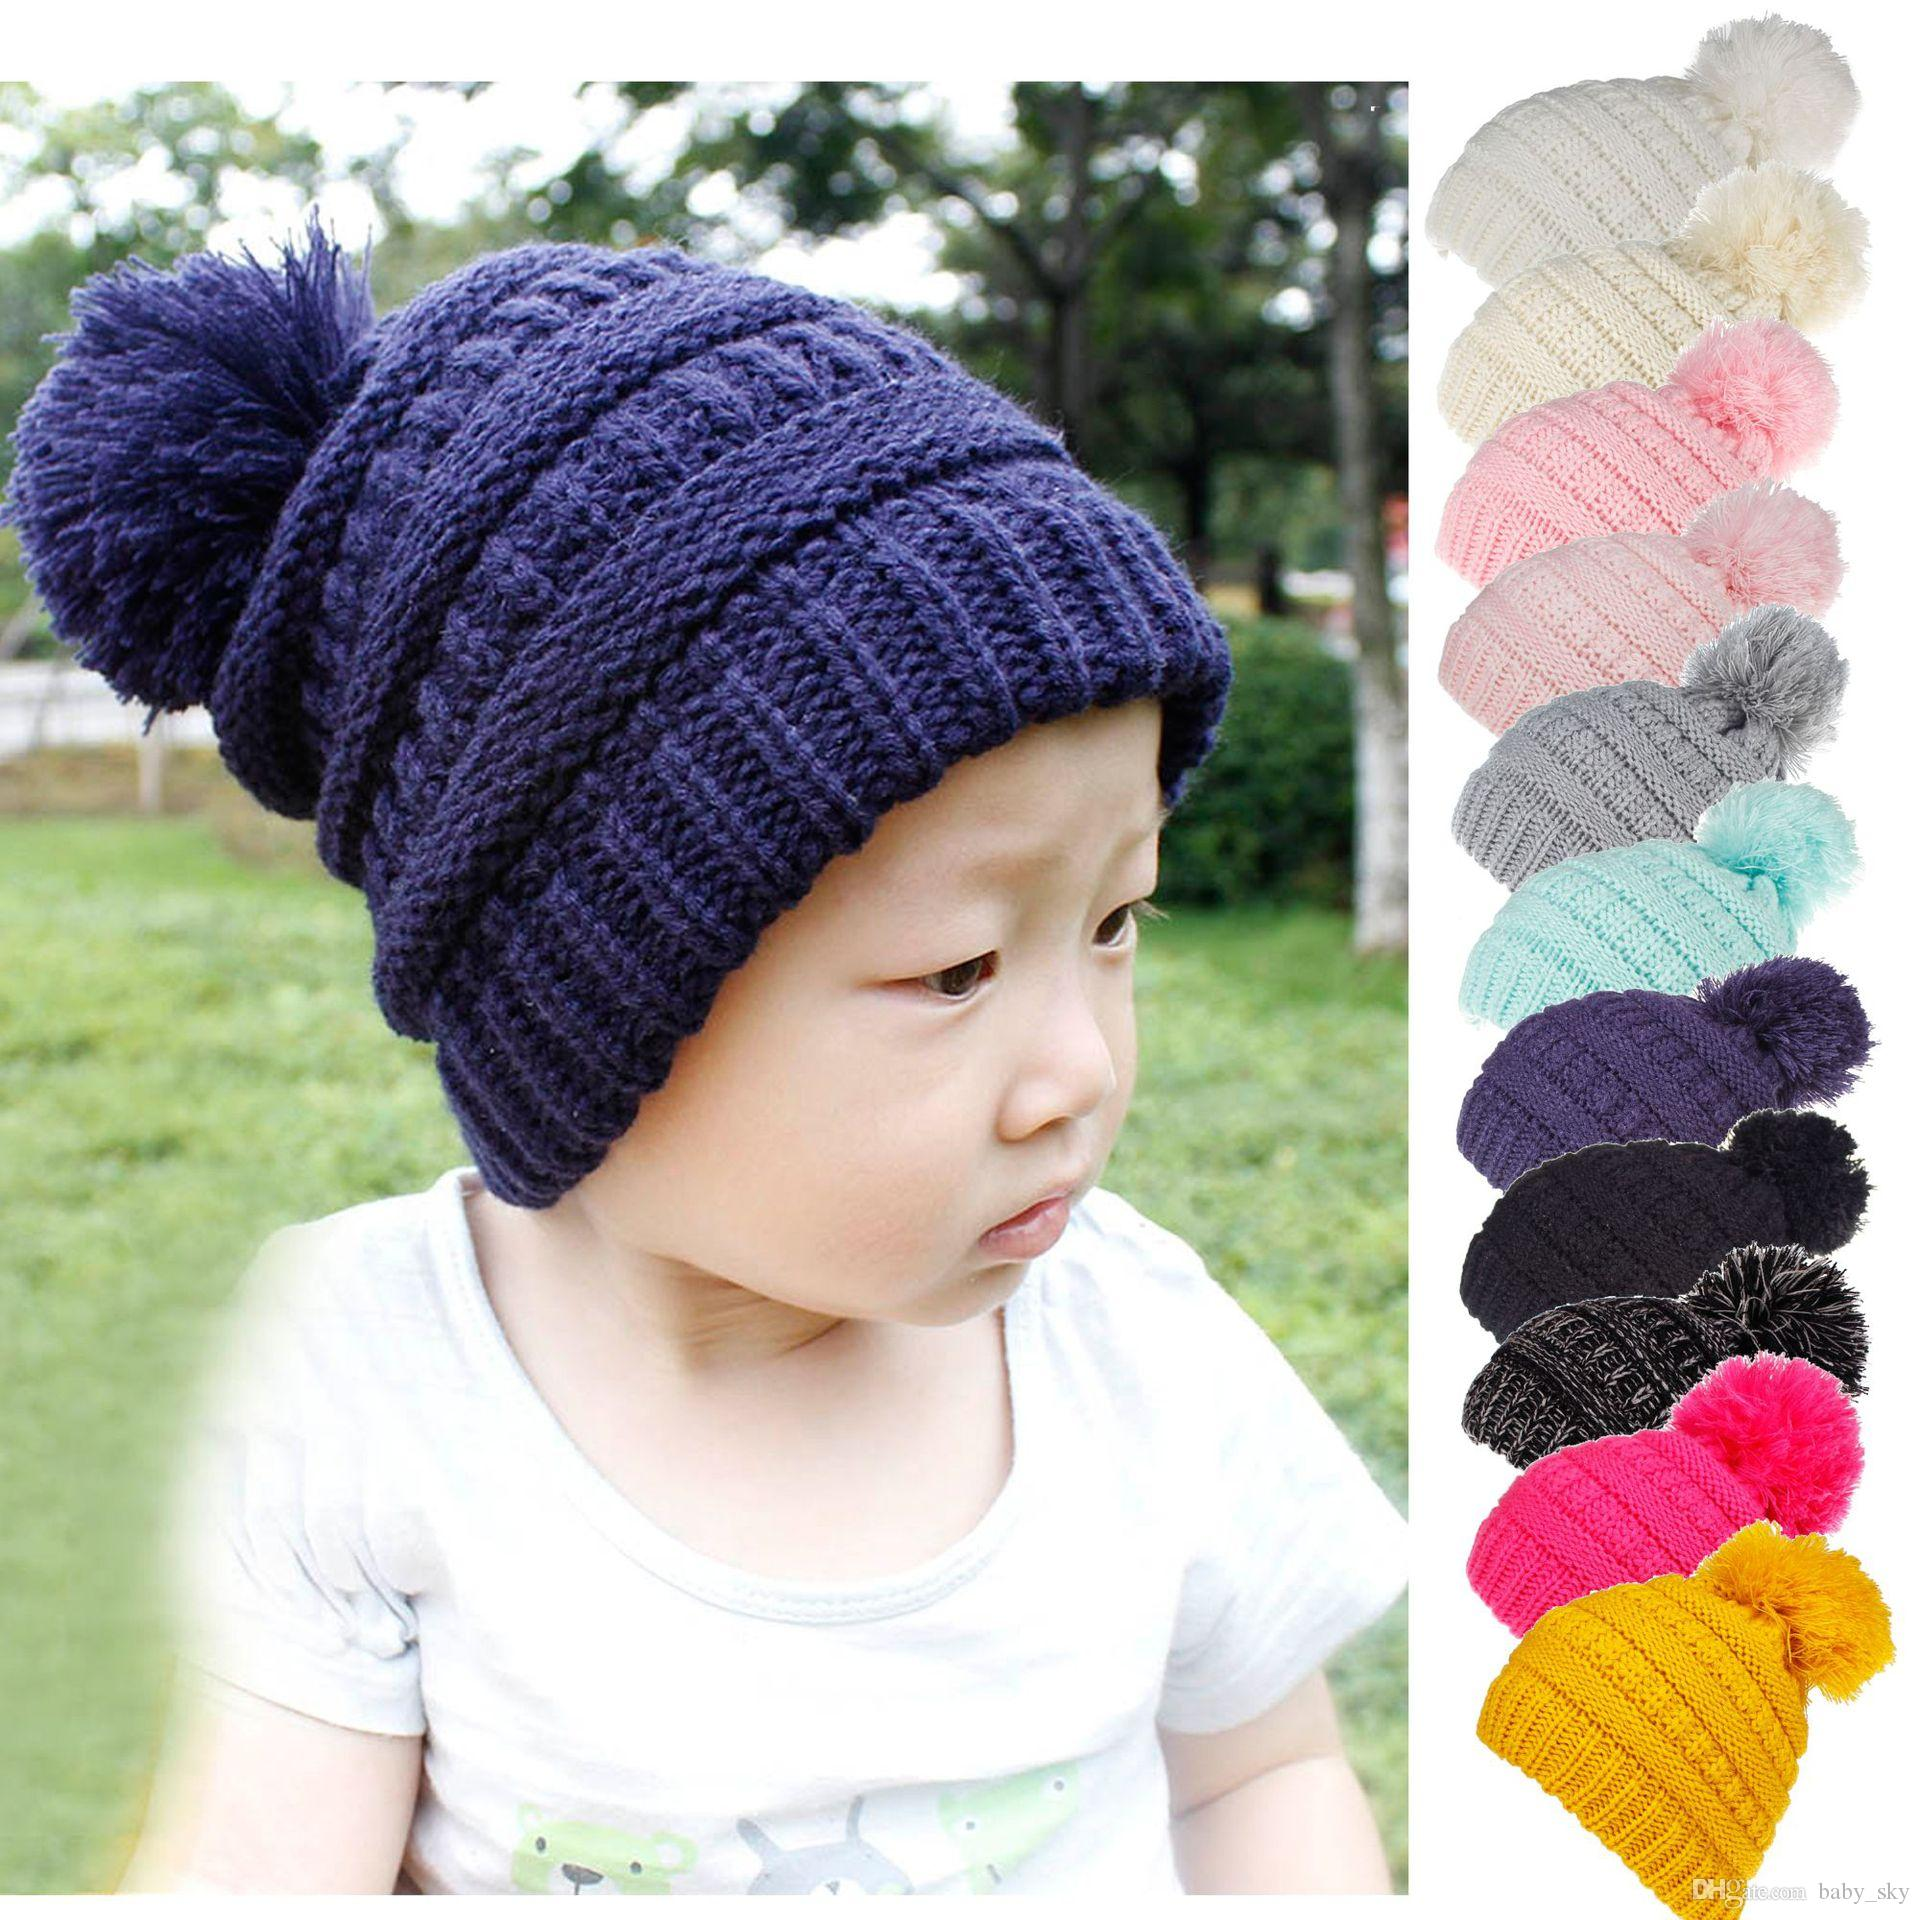 52509c2cba2 Girls Boys Beanie Warm Cute Pompon CC Hat Kids Fashion Knit Cap Mix Color  Autumn Winter Christmas Gift New Kids Hat Online with  3.58 Piece on  Baby sky s ...